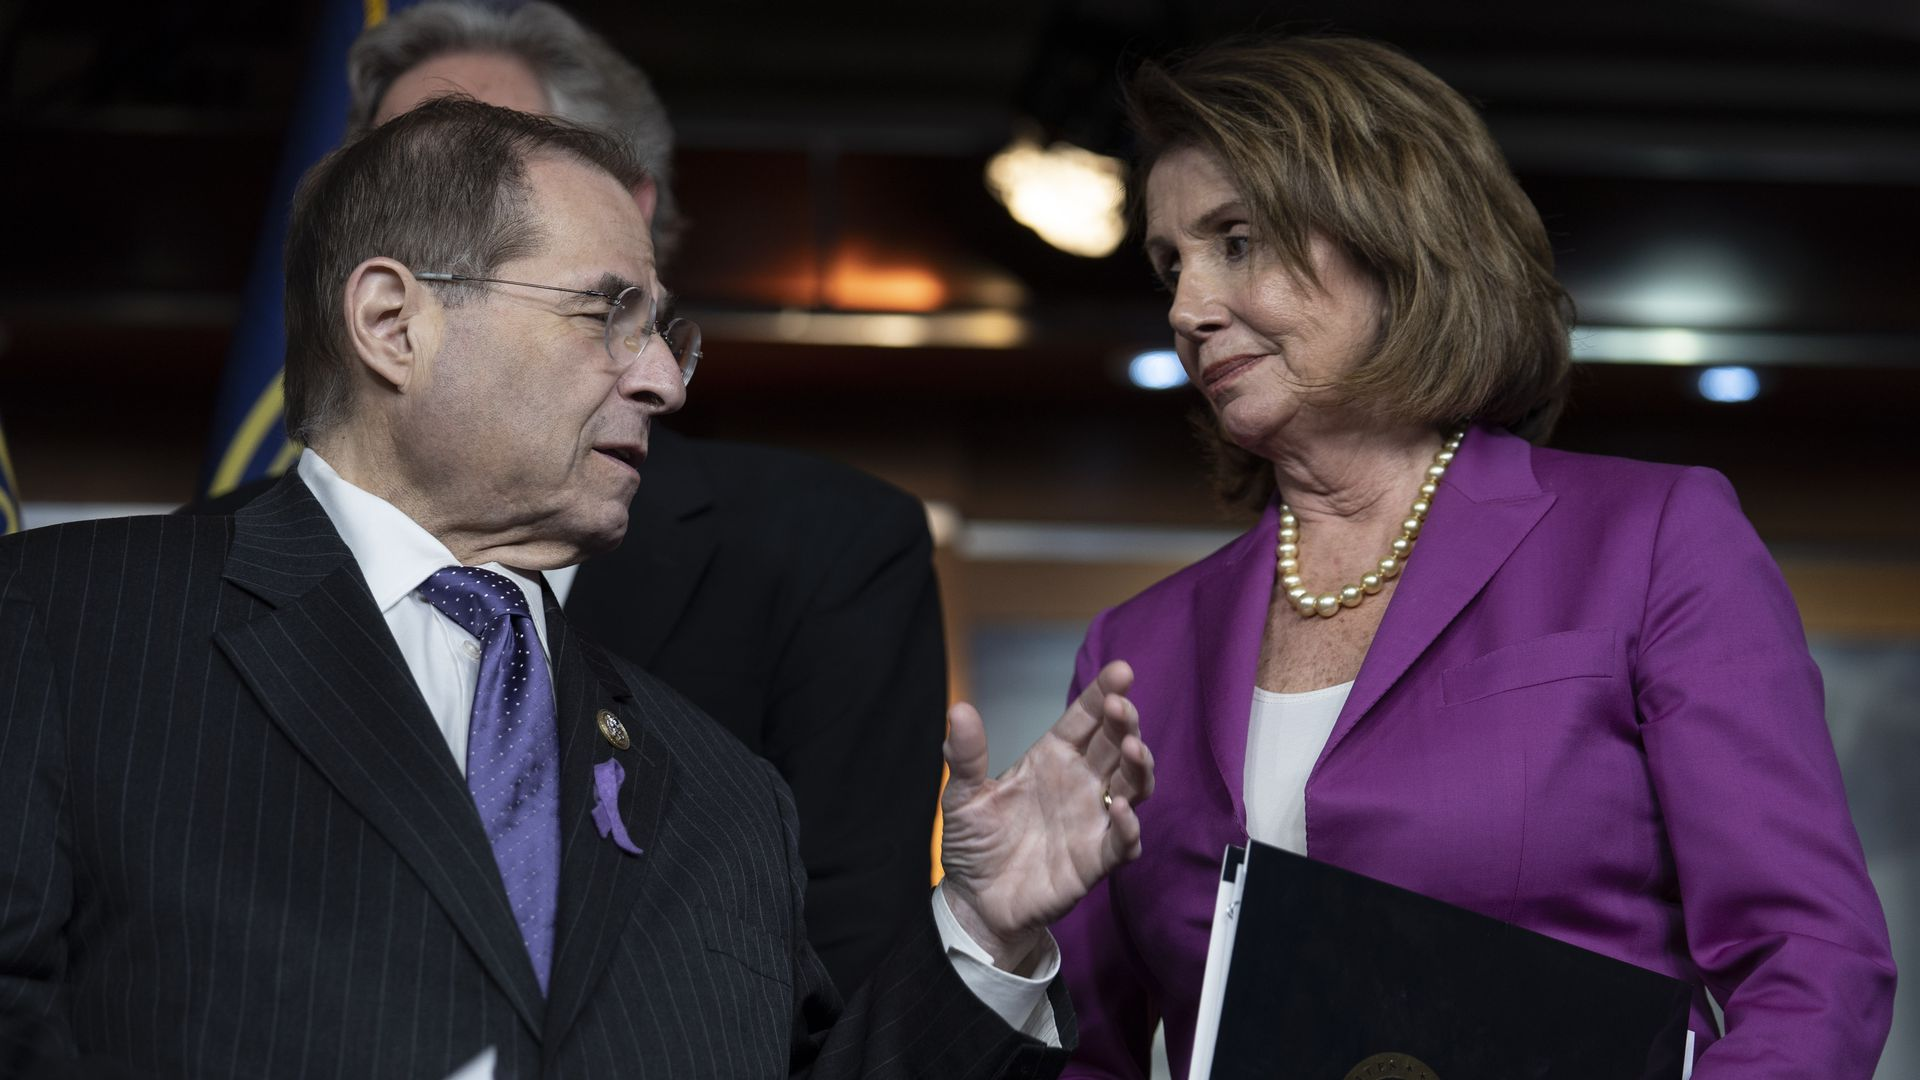 Jerrold Nadler and Nancy Pelosi talk to each other